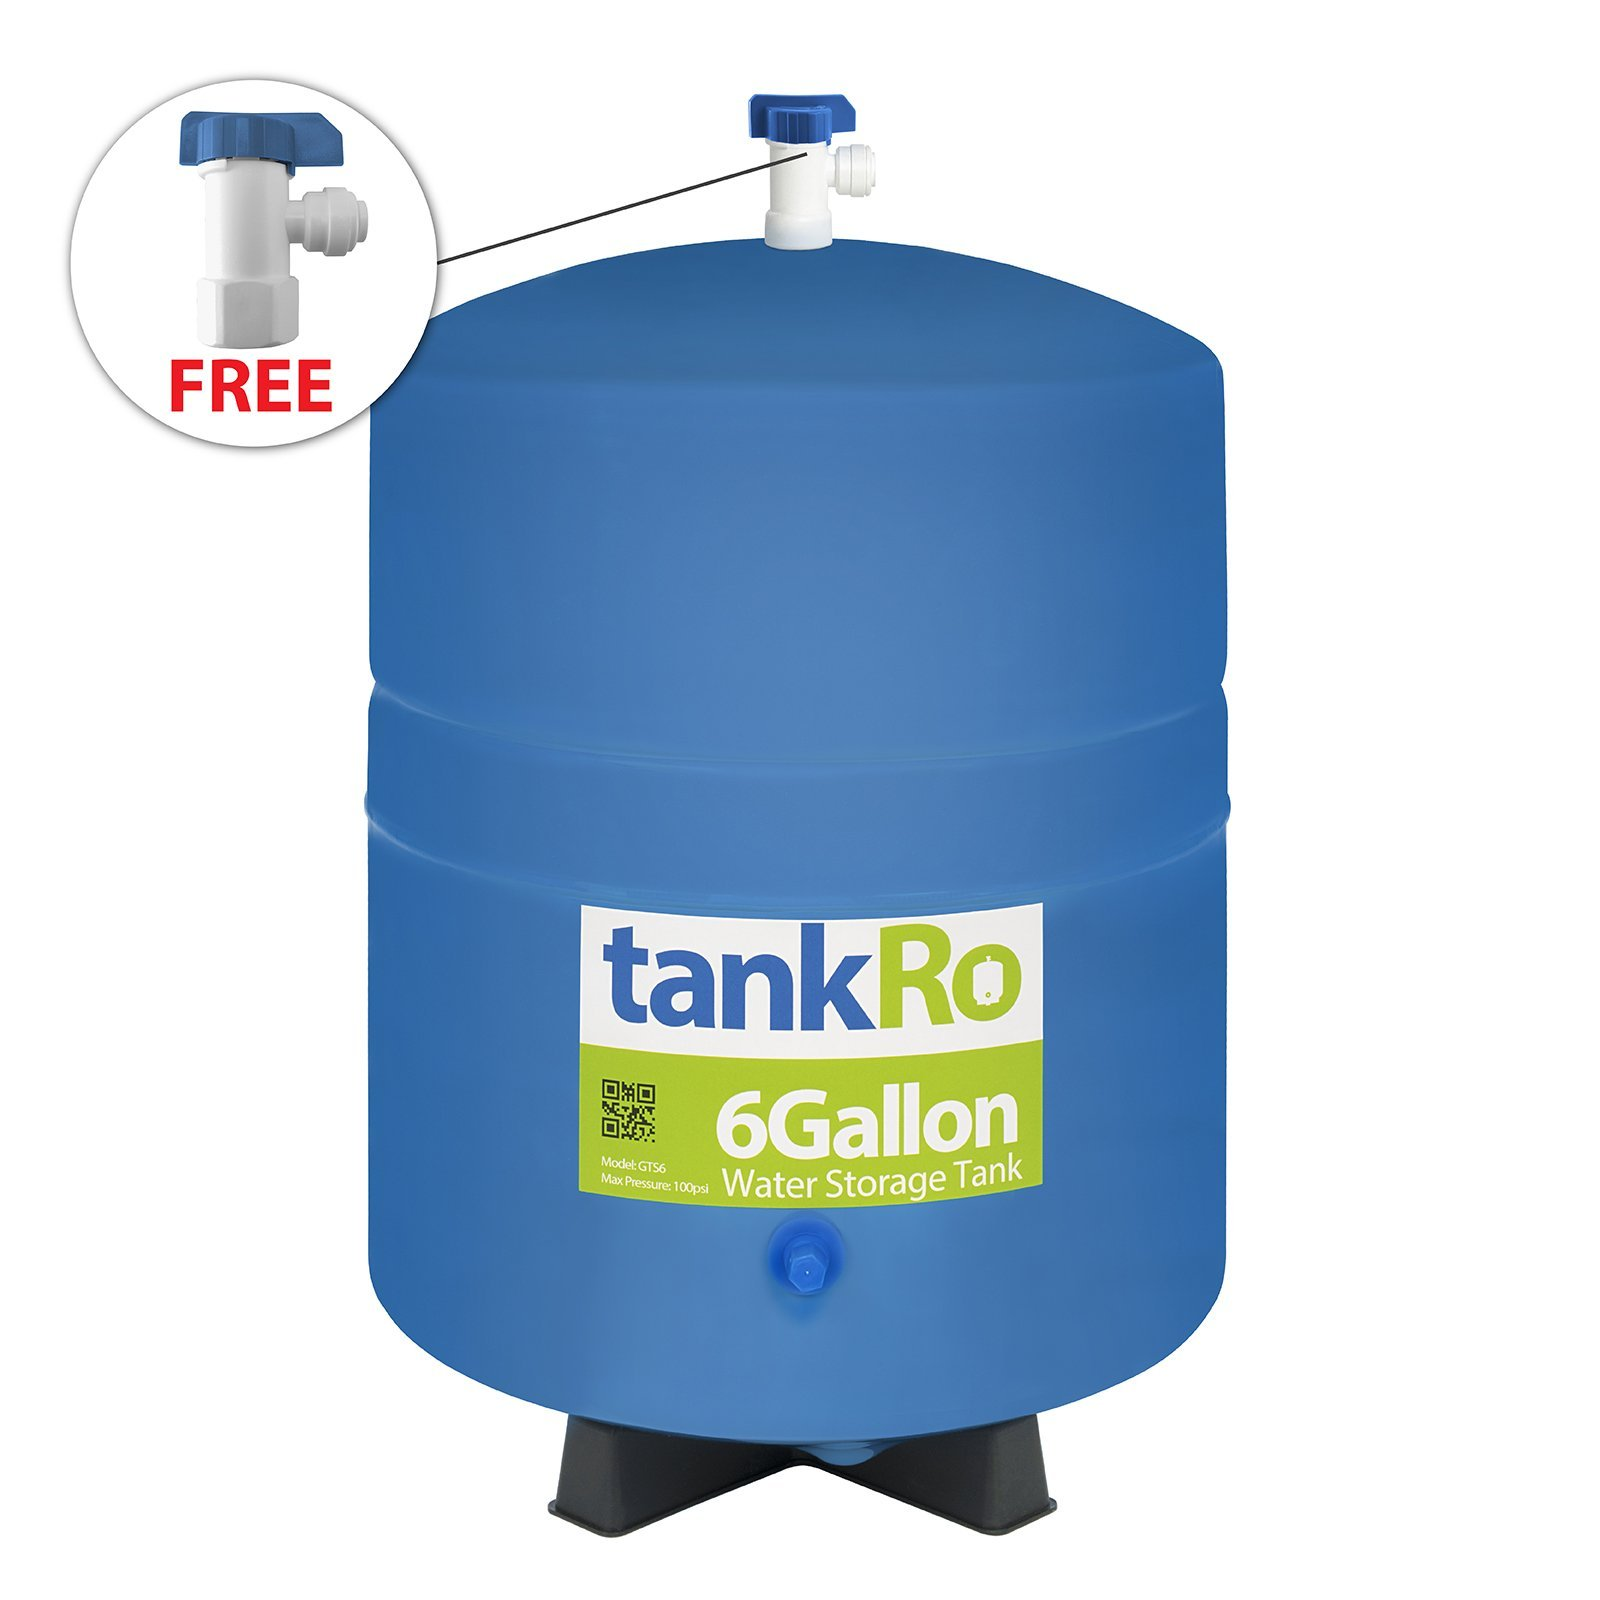 tankRo 6 Gallon RO Expansion Tank – Compact Reverse Osmosis Water Storage Pressure Tank by with FREE Tank Ball Valve